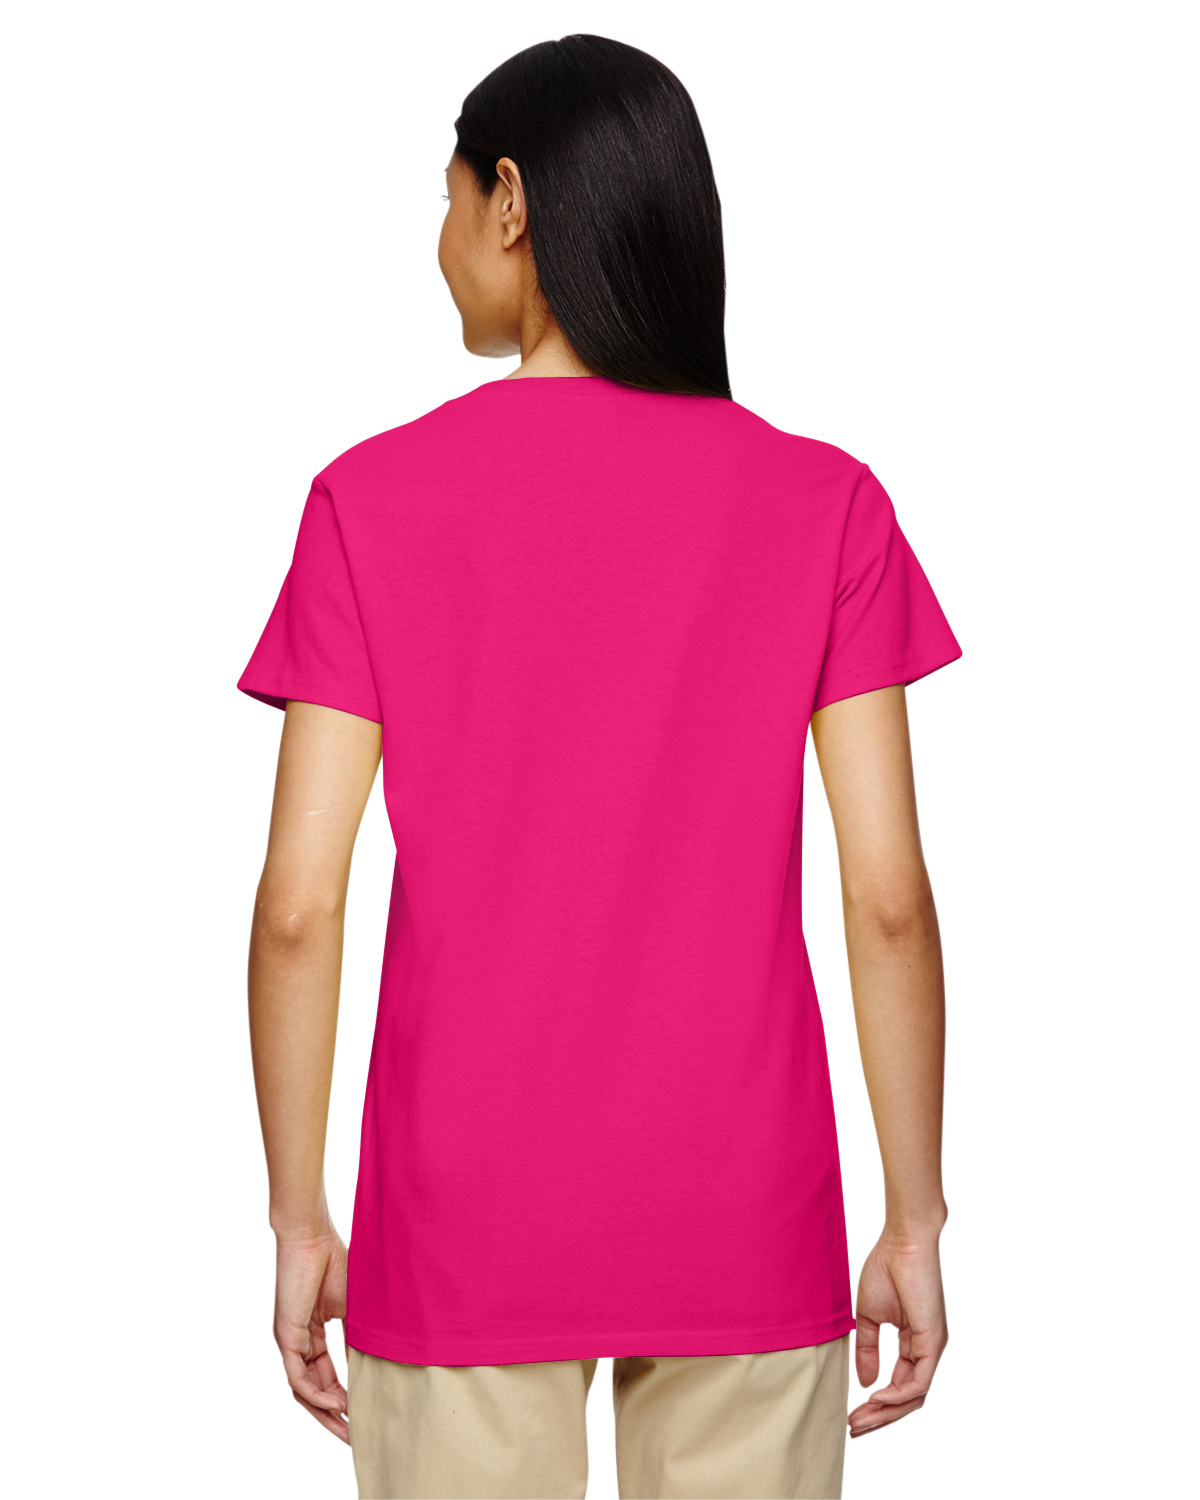 New gildan women 39 s heavy cotton short sleeves ladies v for Gildan brand t shirt size chart